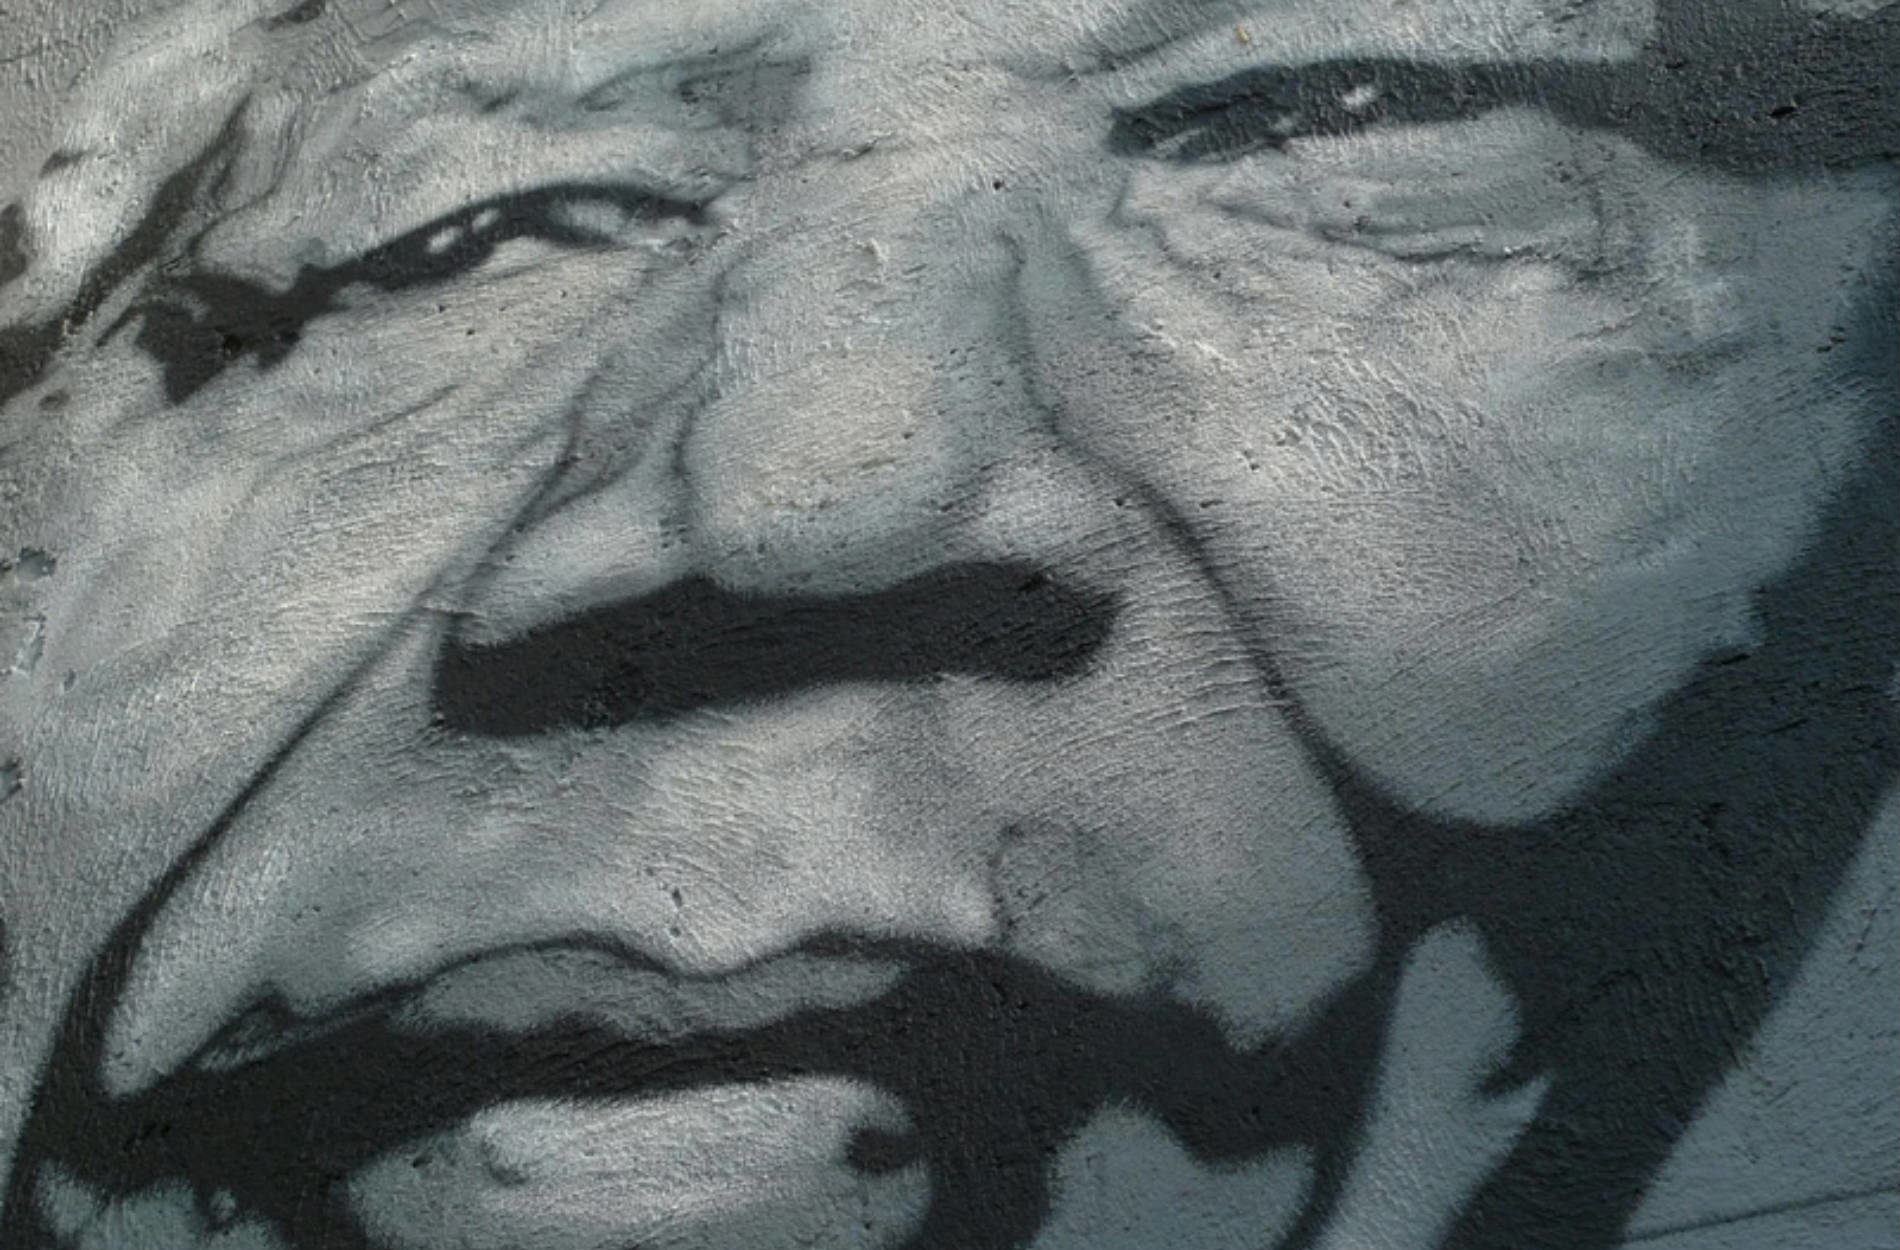 Nelson Mandela painted portrait